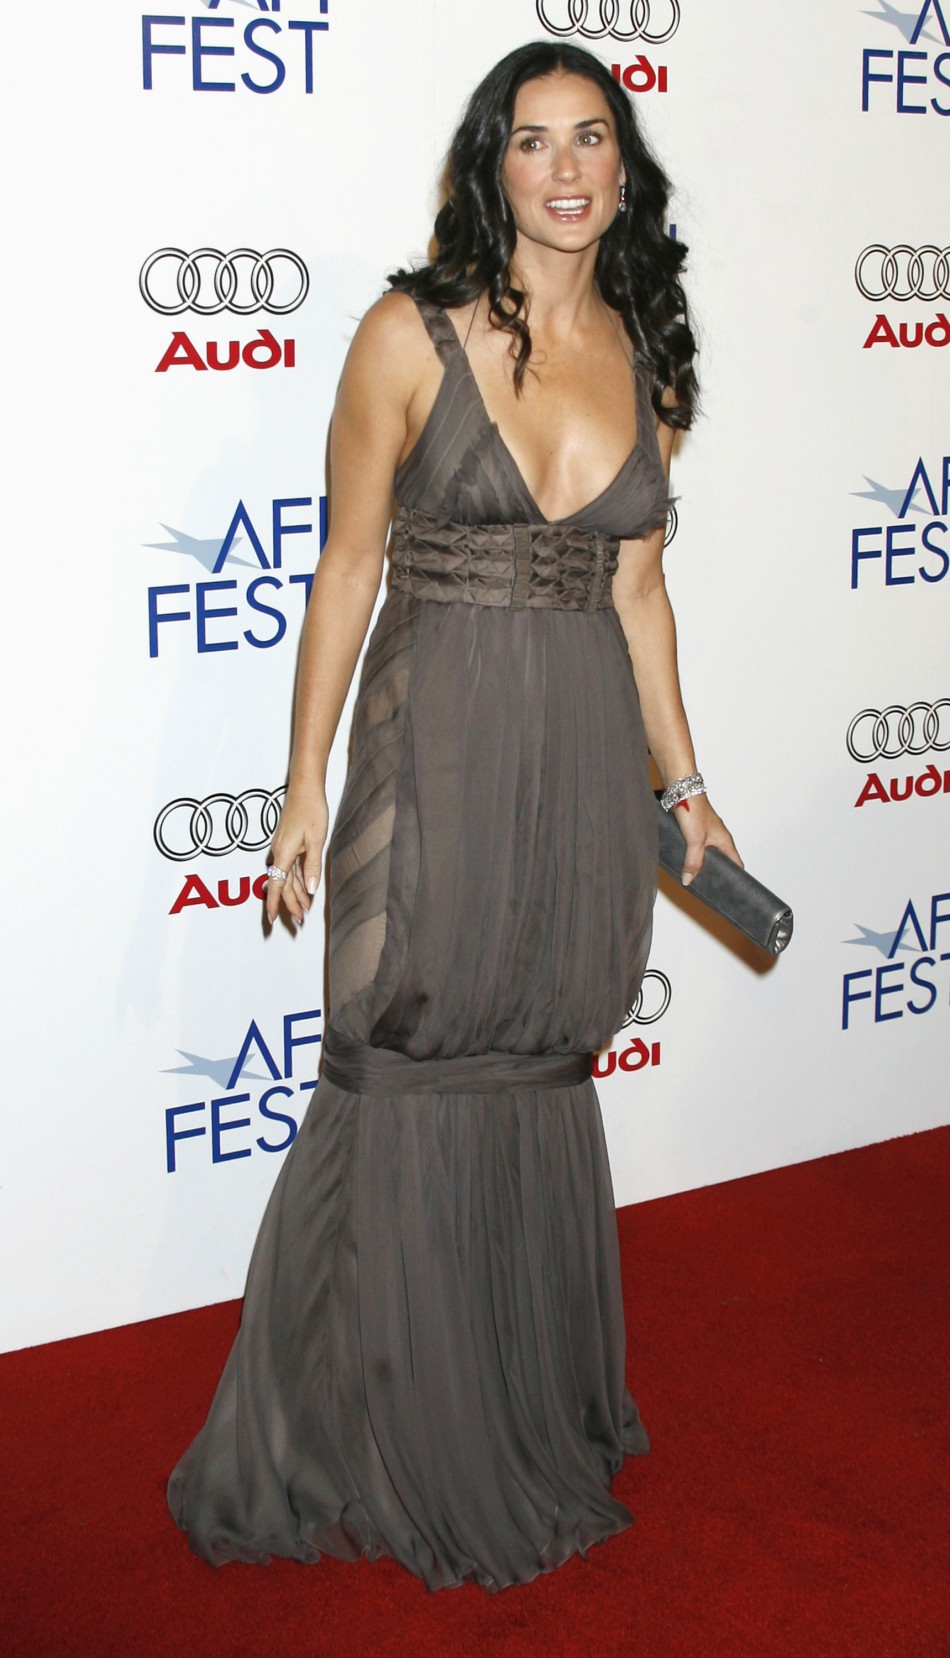 Actress Demi Moore arrives at the opening night gala of the AFI Fest and US premiere of the film quotBobbyquot in Hollywood